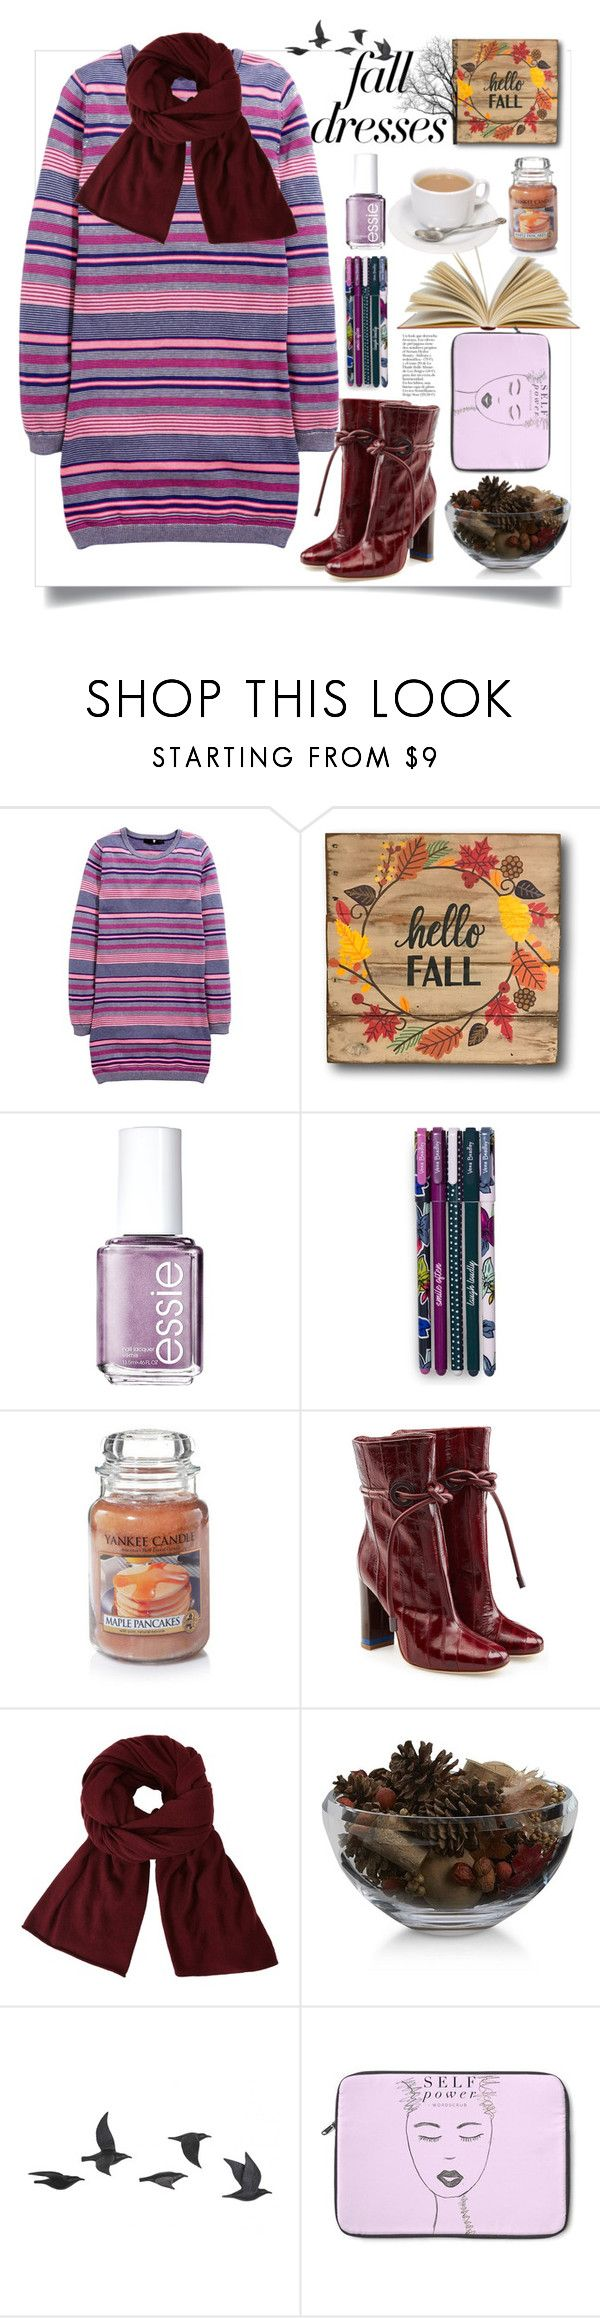 """""""Fall Dress"""" by natalyapril1976 on Polyvore featuring Essie, Vera Bradley, Malone Souliers, John Lewis, Crate and Barrel and Jayson Home"""